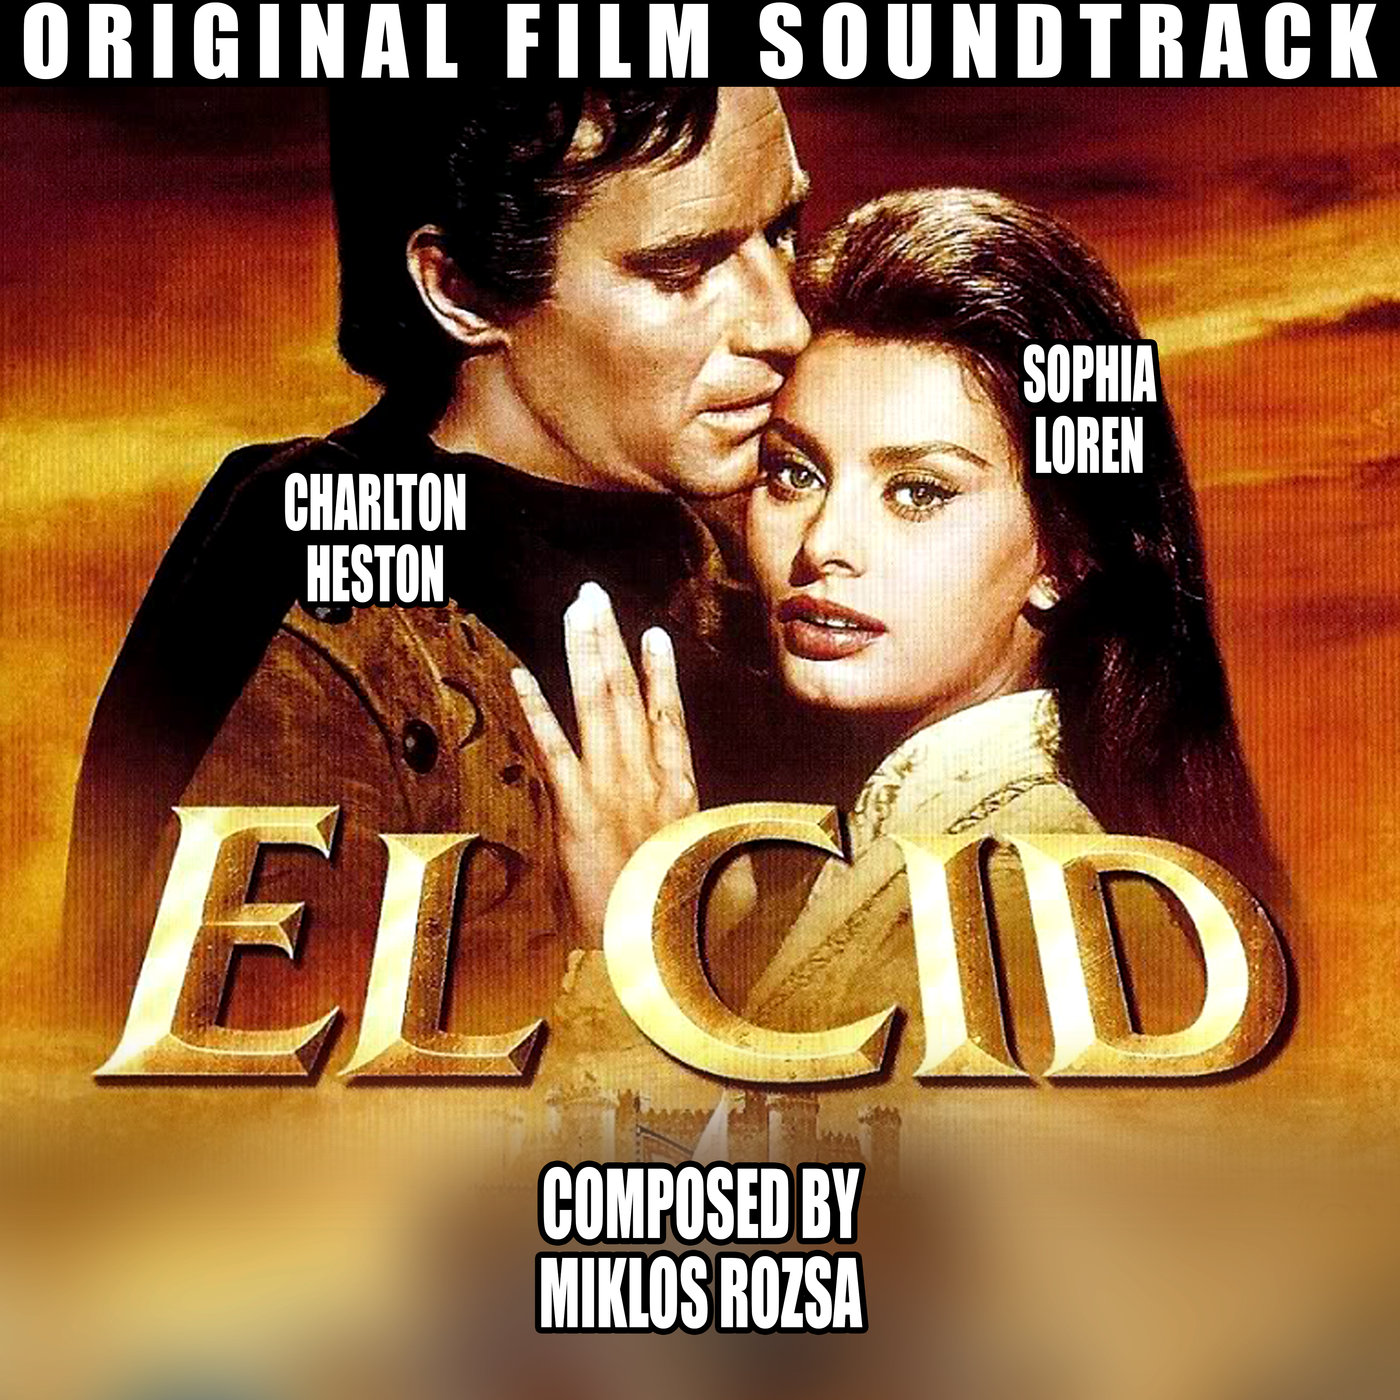 a biography of el cid Definition of el cid in the audioenglishorg dictionary meaning of el cid who is/who was el cid proper usage and pronunciation (in phonetic transcription) of the word el cid.